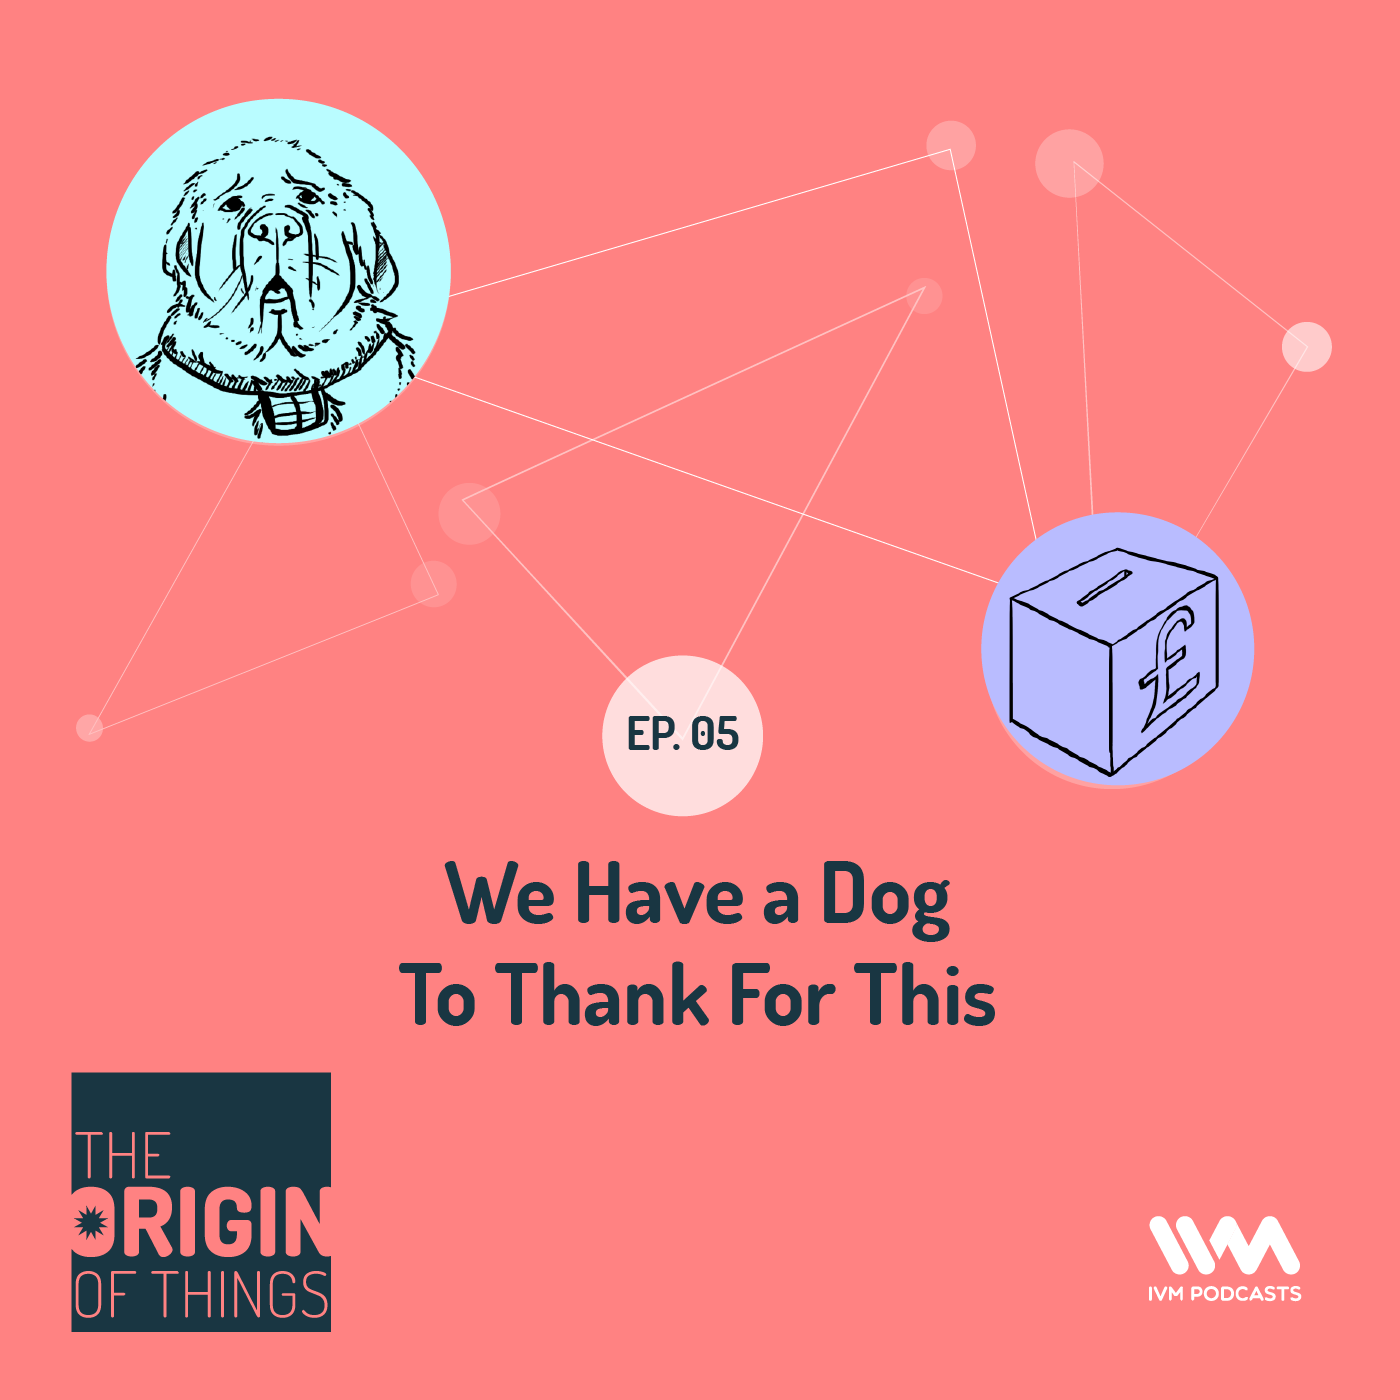 Ep. 05: We Have a Dog To Thank For This